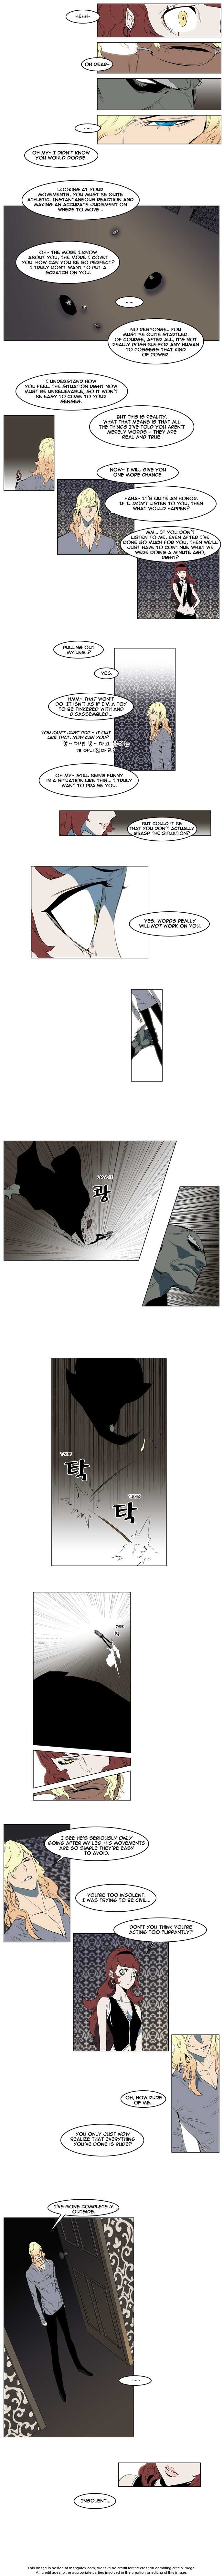 Noblesse 146 Page 3